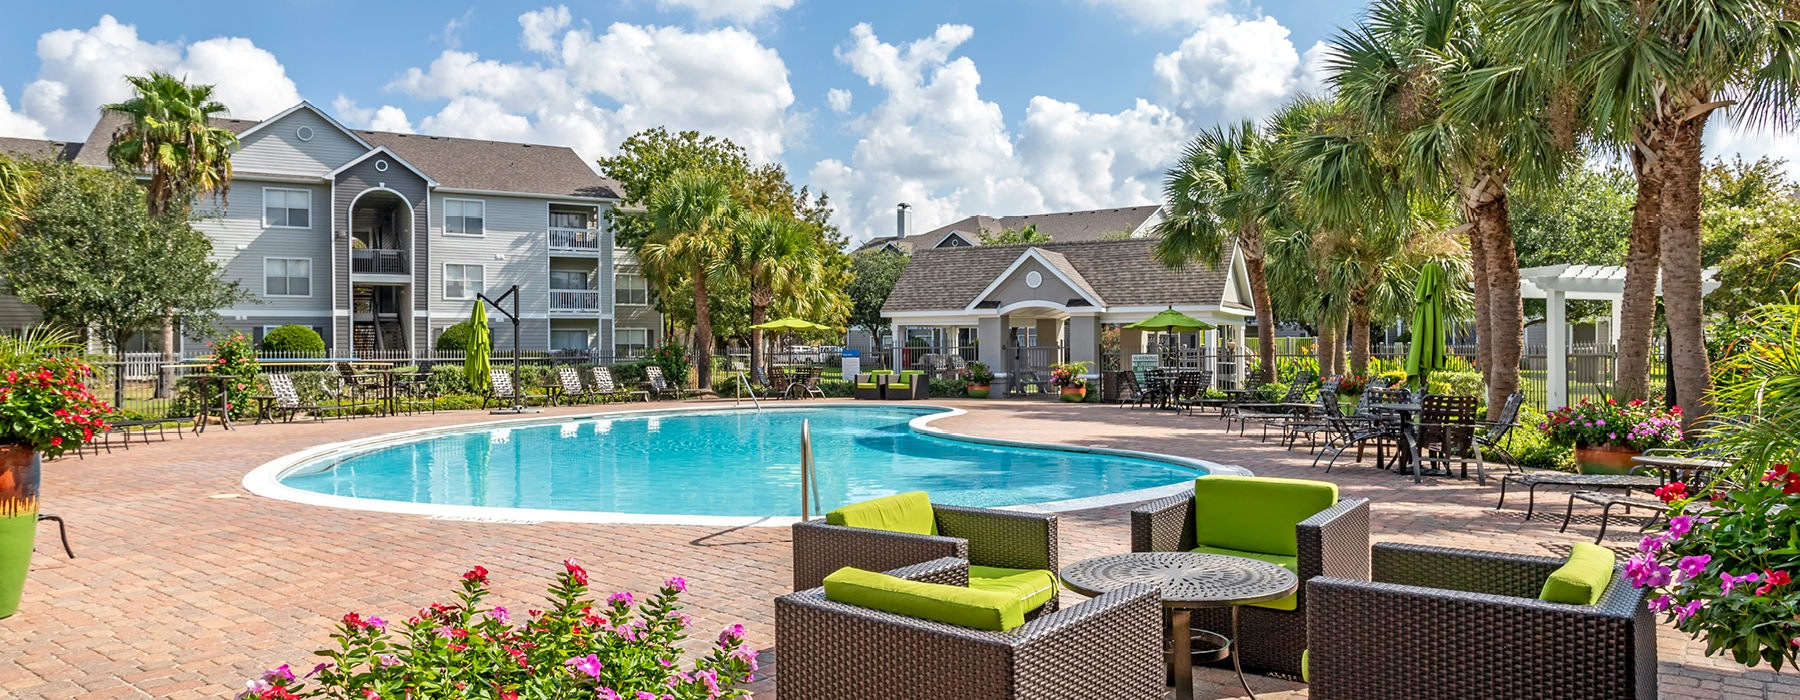 Large pool with shaded seating and clubhouse access.